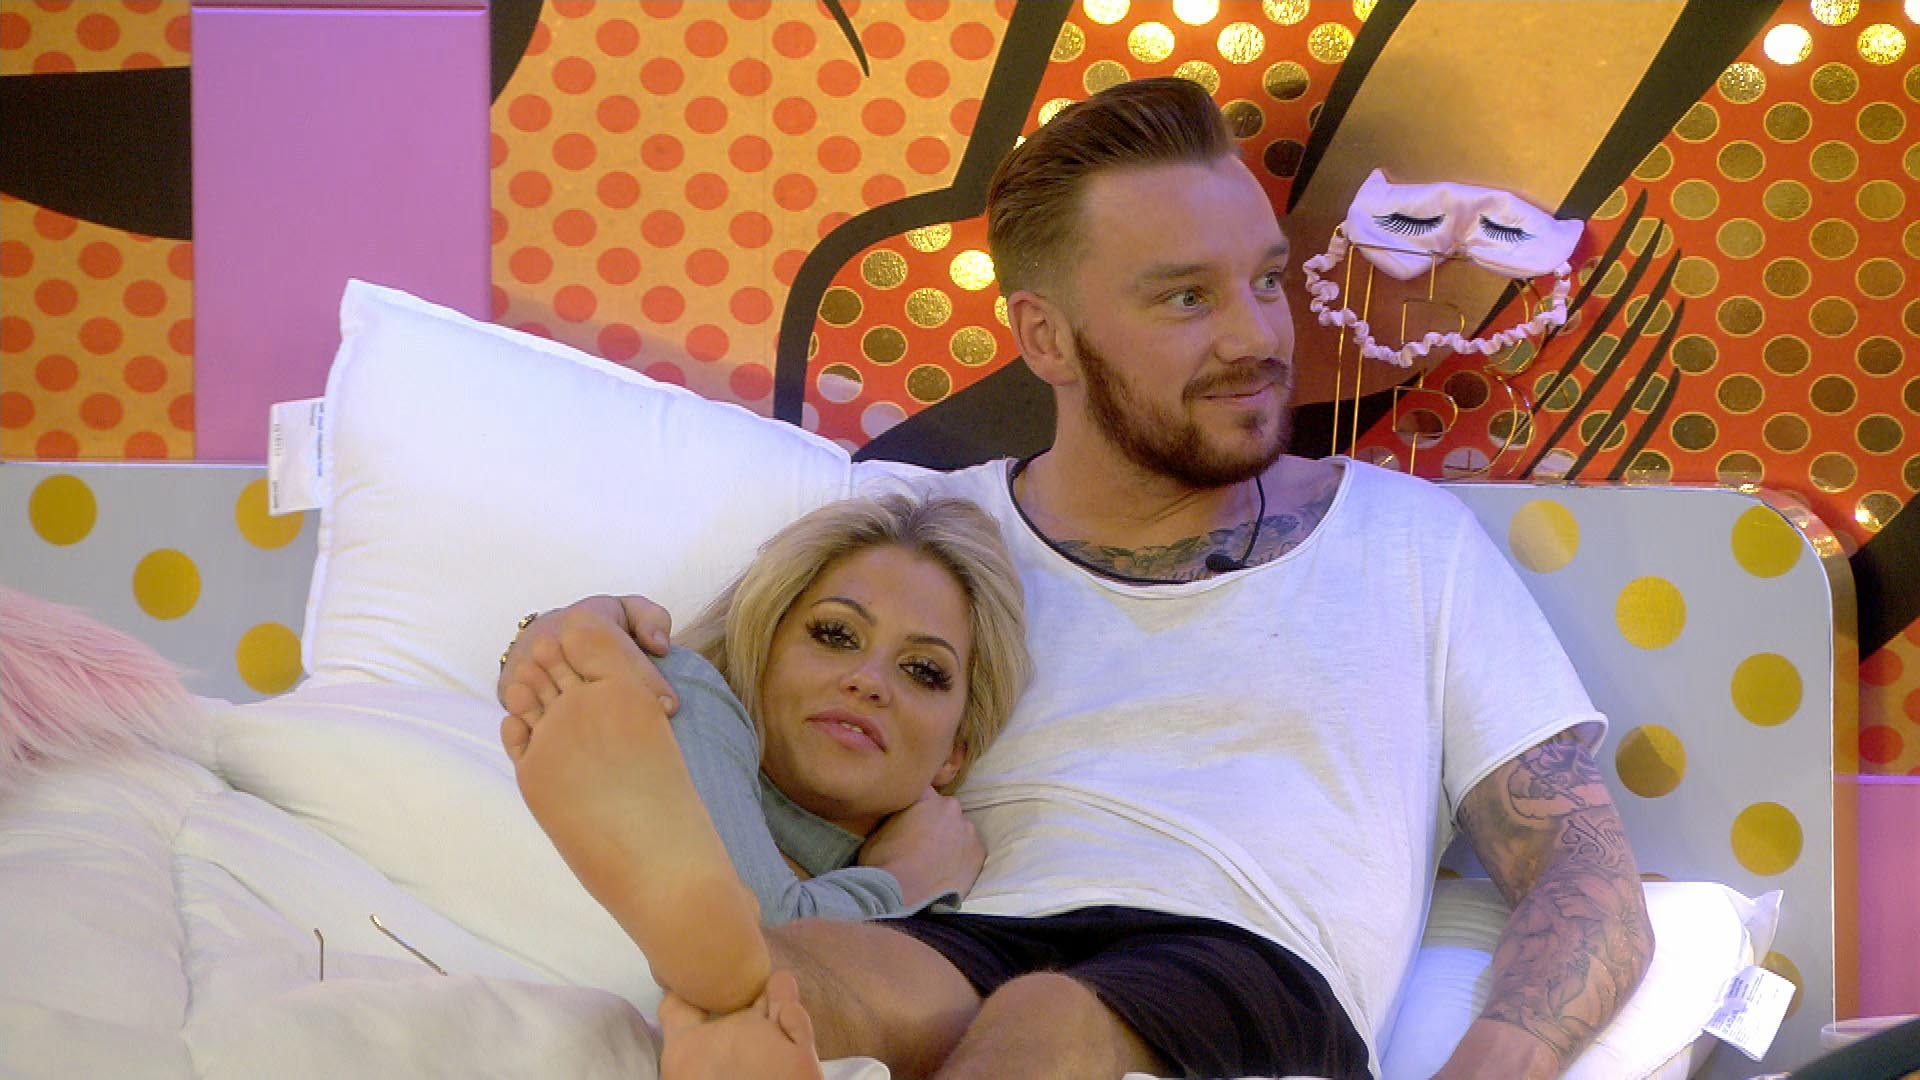 Jamie O'Hara almost had SEX with Bianca Gascoigne in Celebrity Big Brother toilets! | Celebrity Big Brother 2017 | TwitCelebGossip